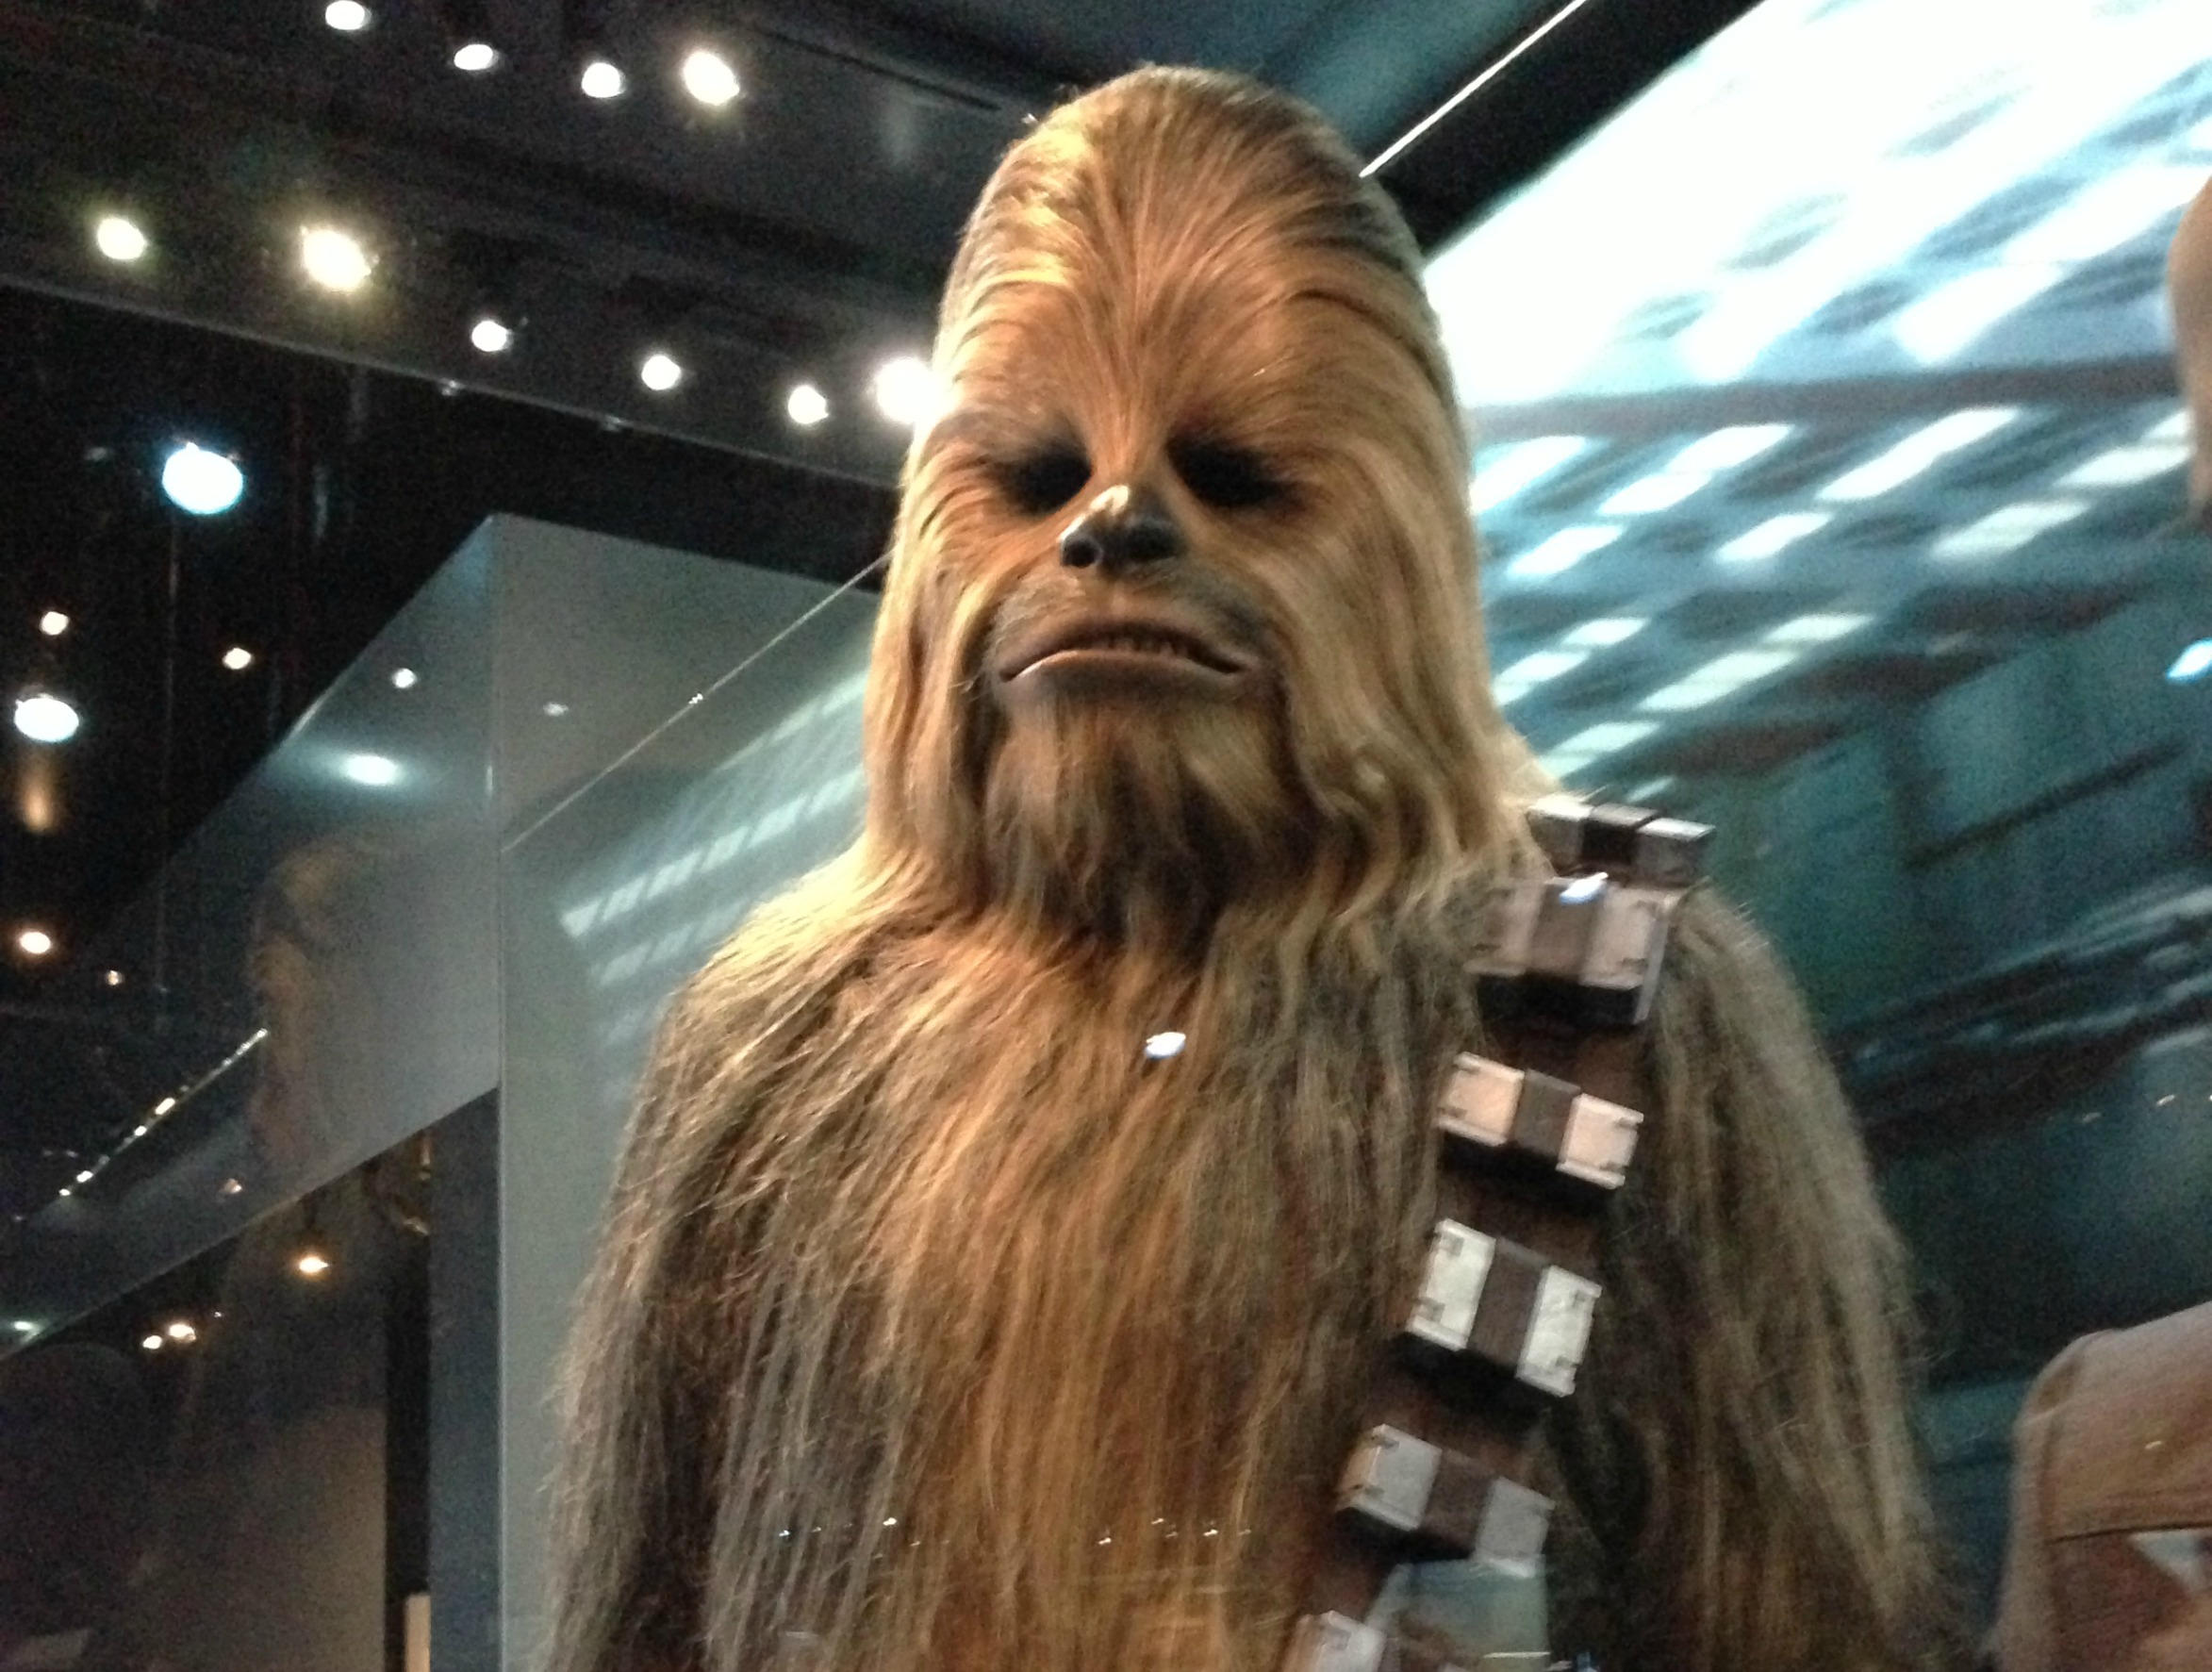 Chewbacca at Star Wars Identities